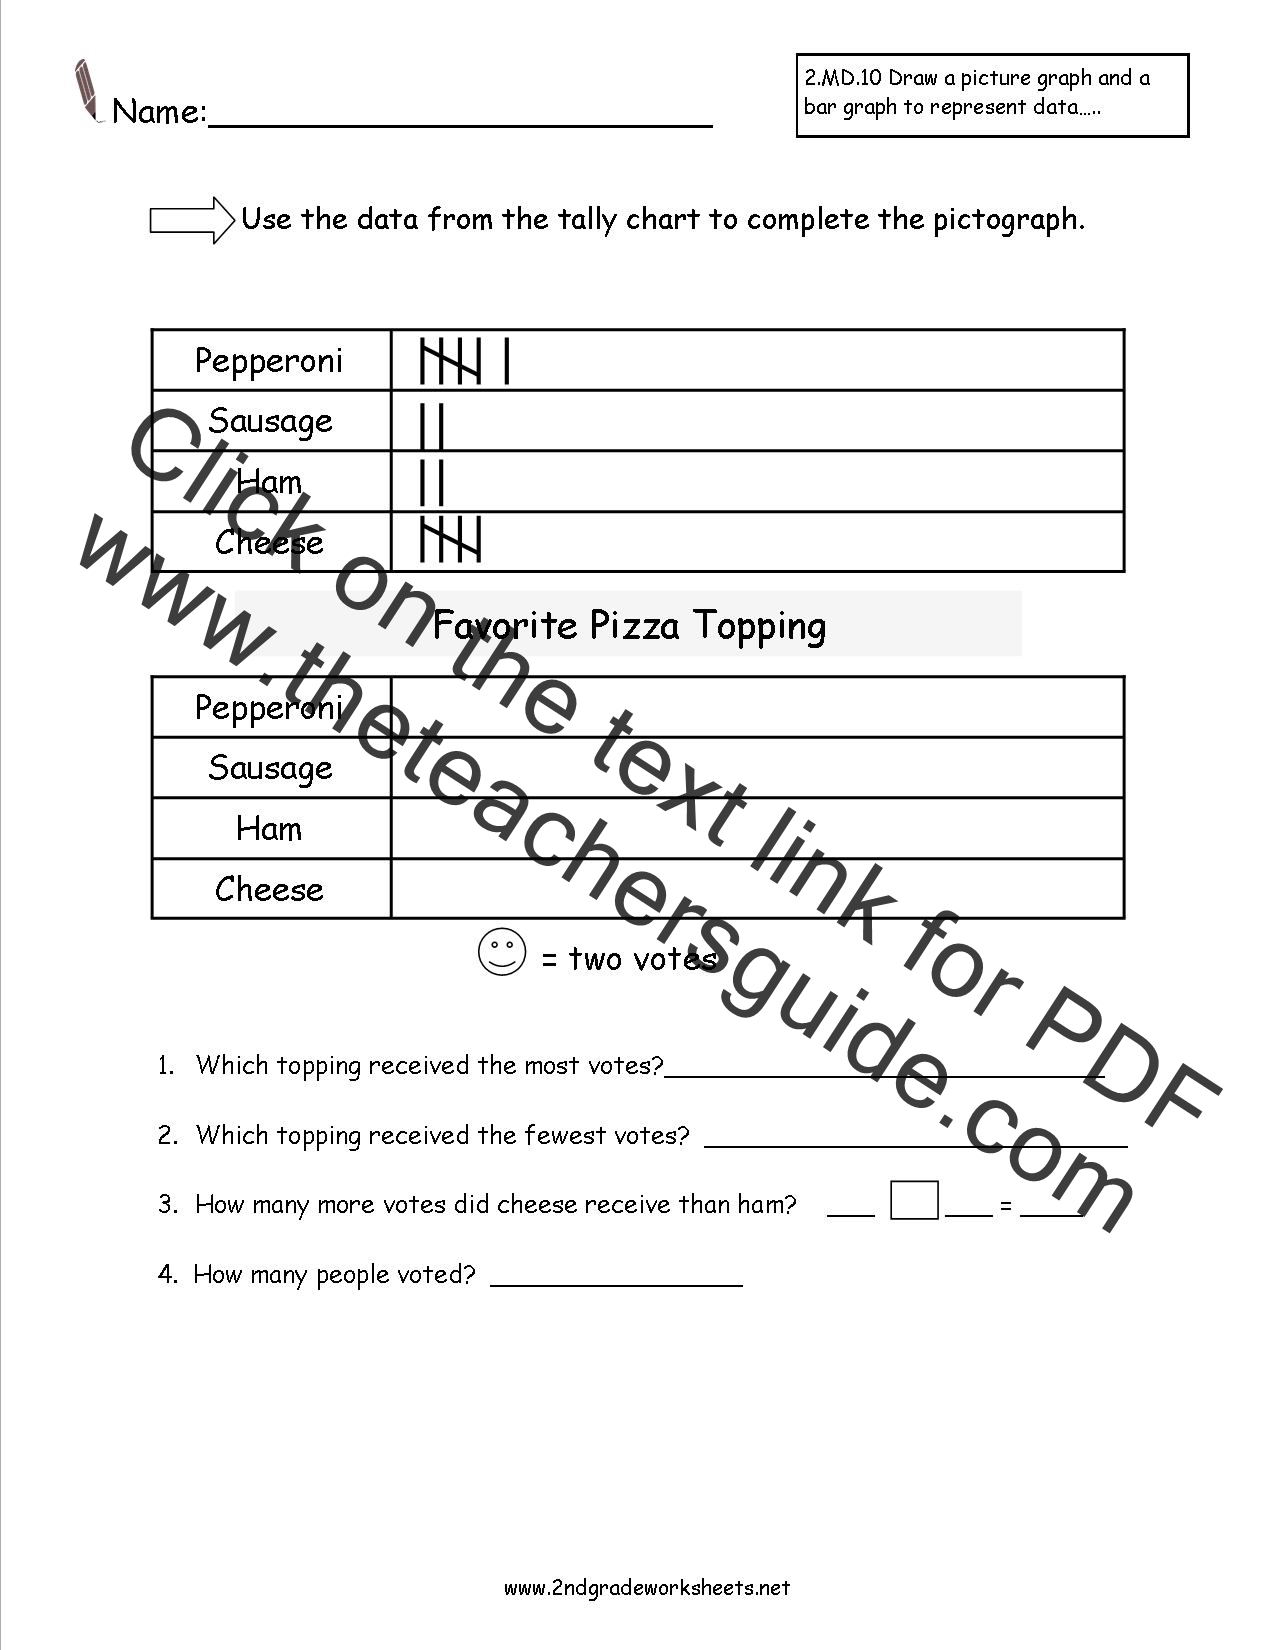 Uncategorized Pictographs Worksheets grade reading and creating pictograph worksheets favorite pizza topping pictograph